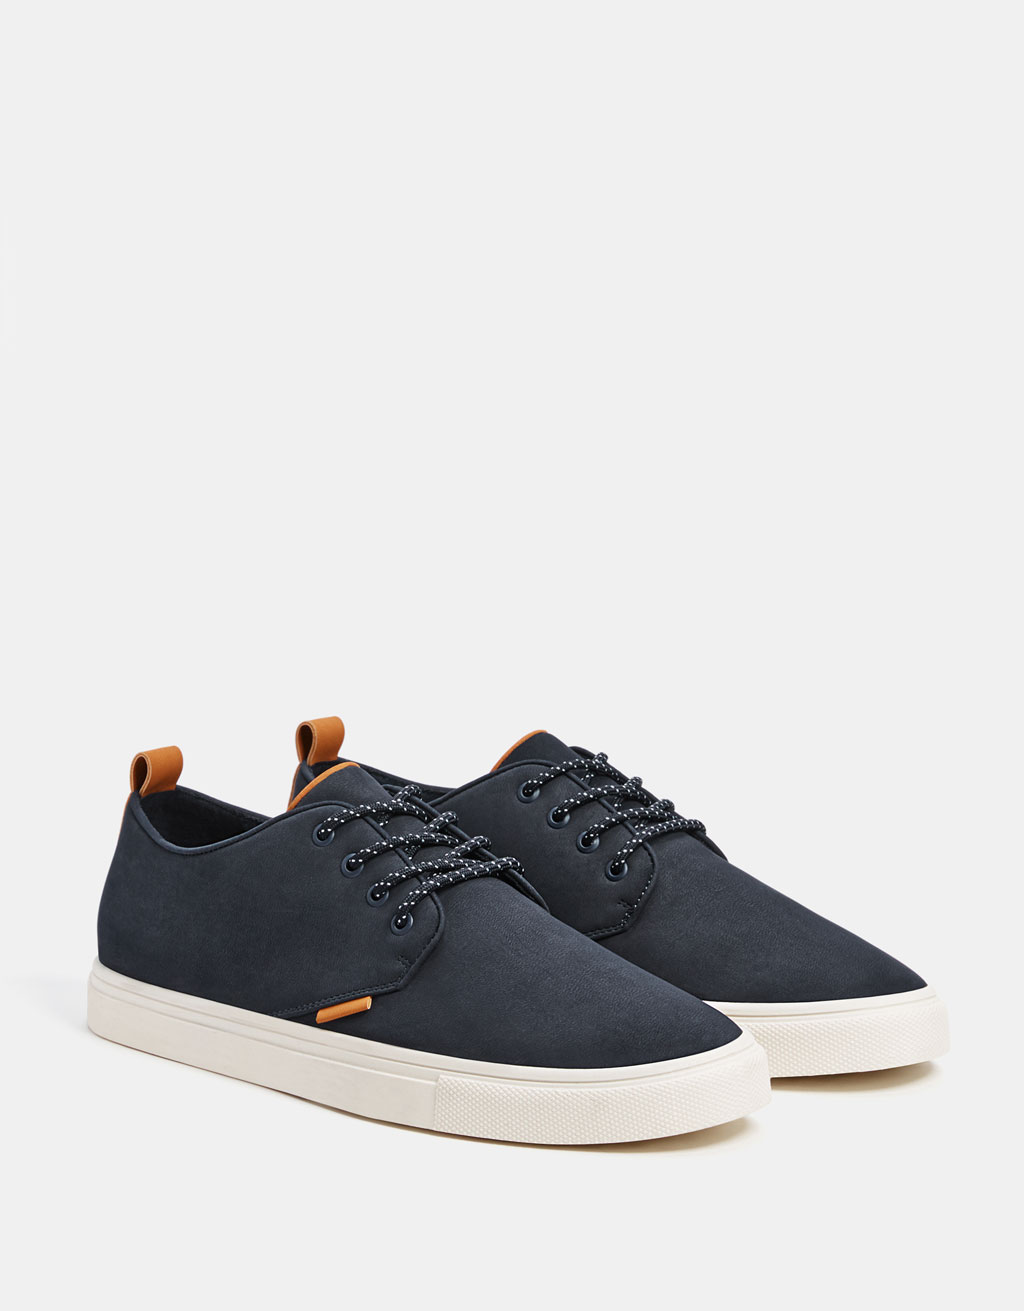 Men's blue smart sneakers